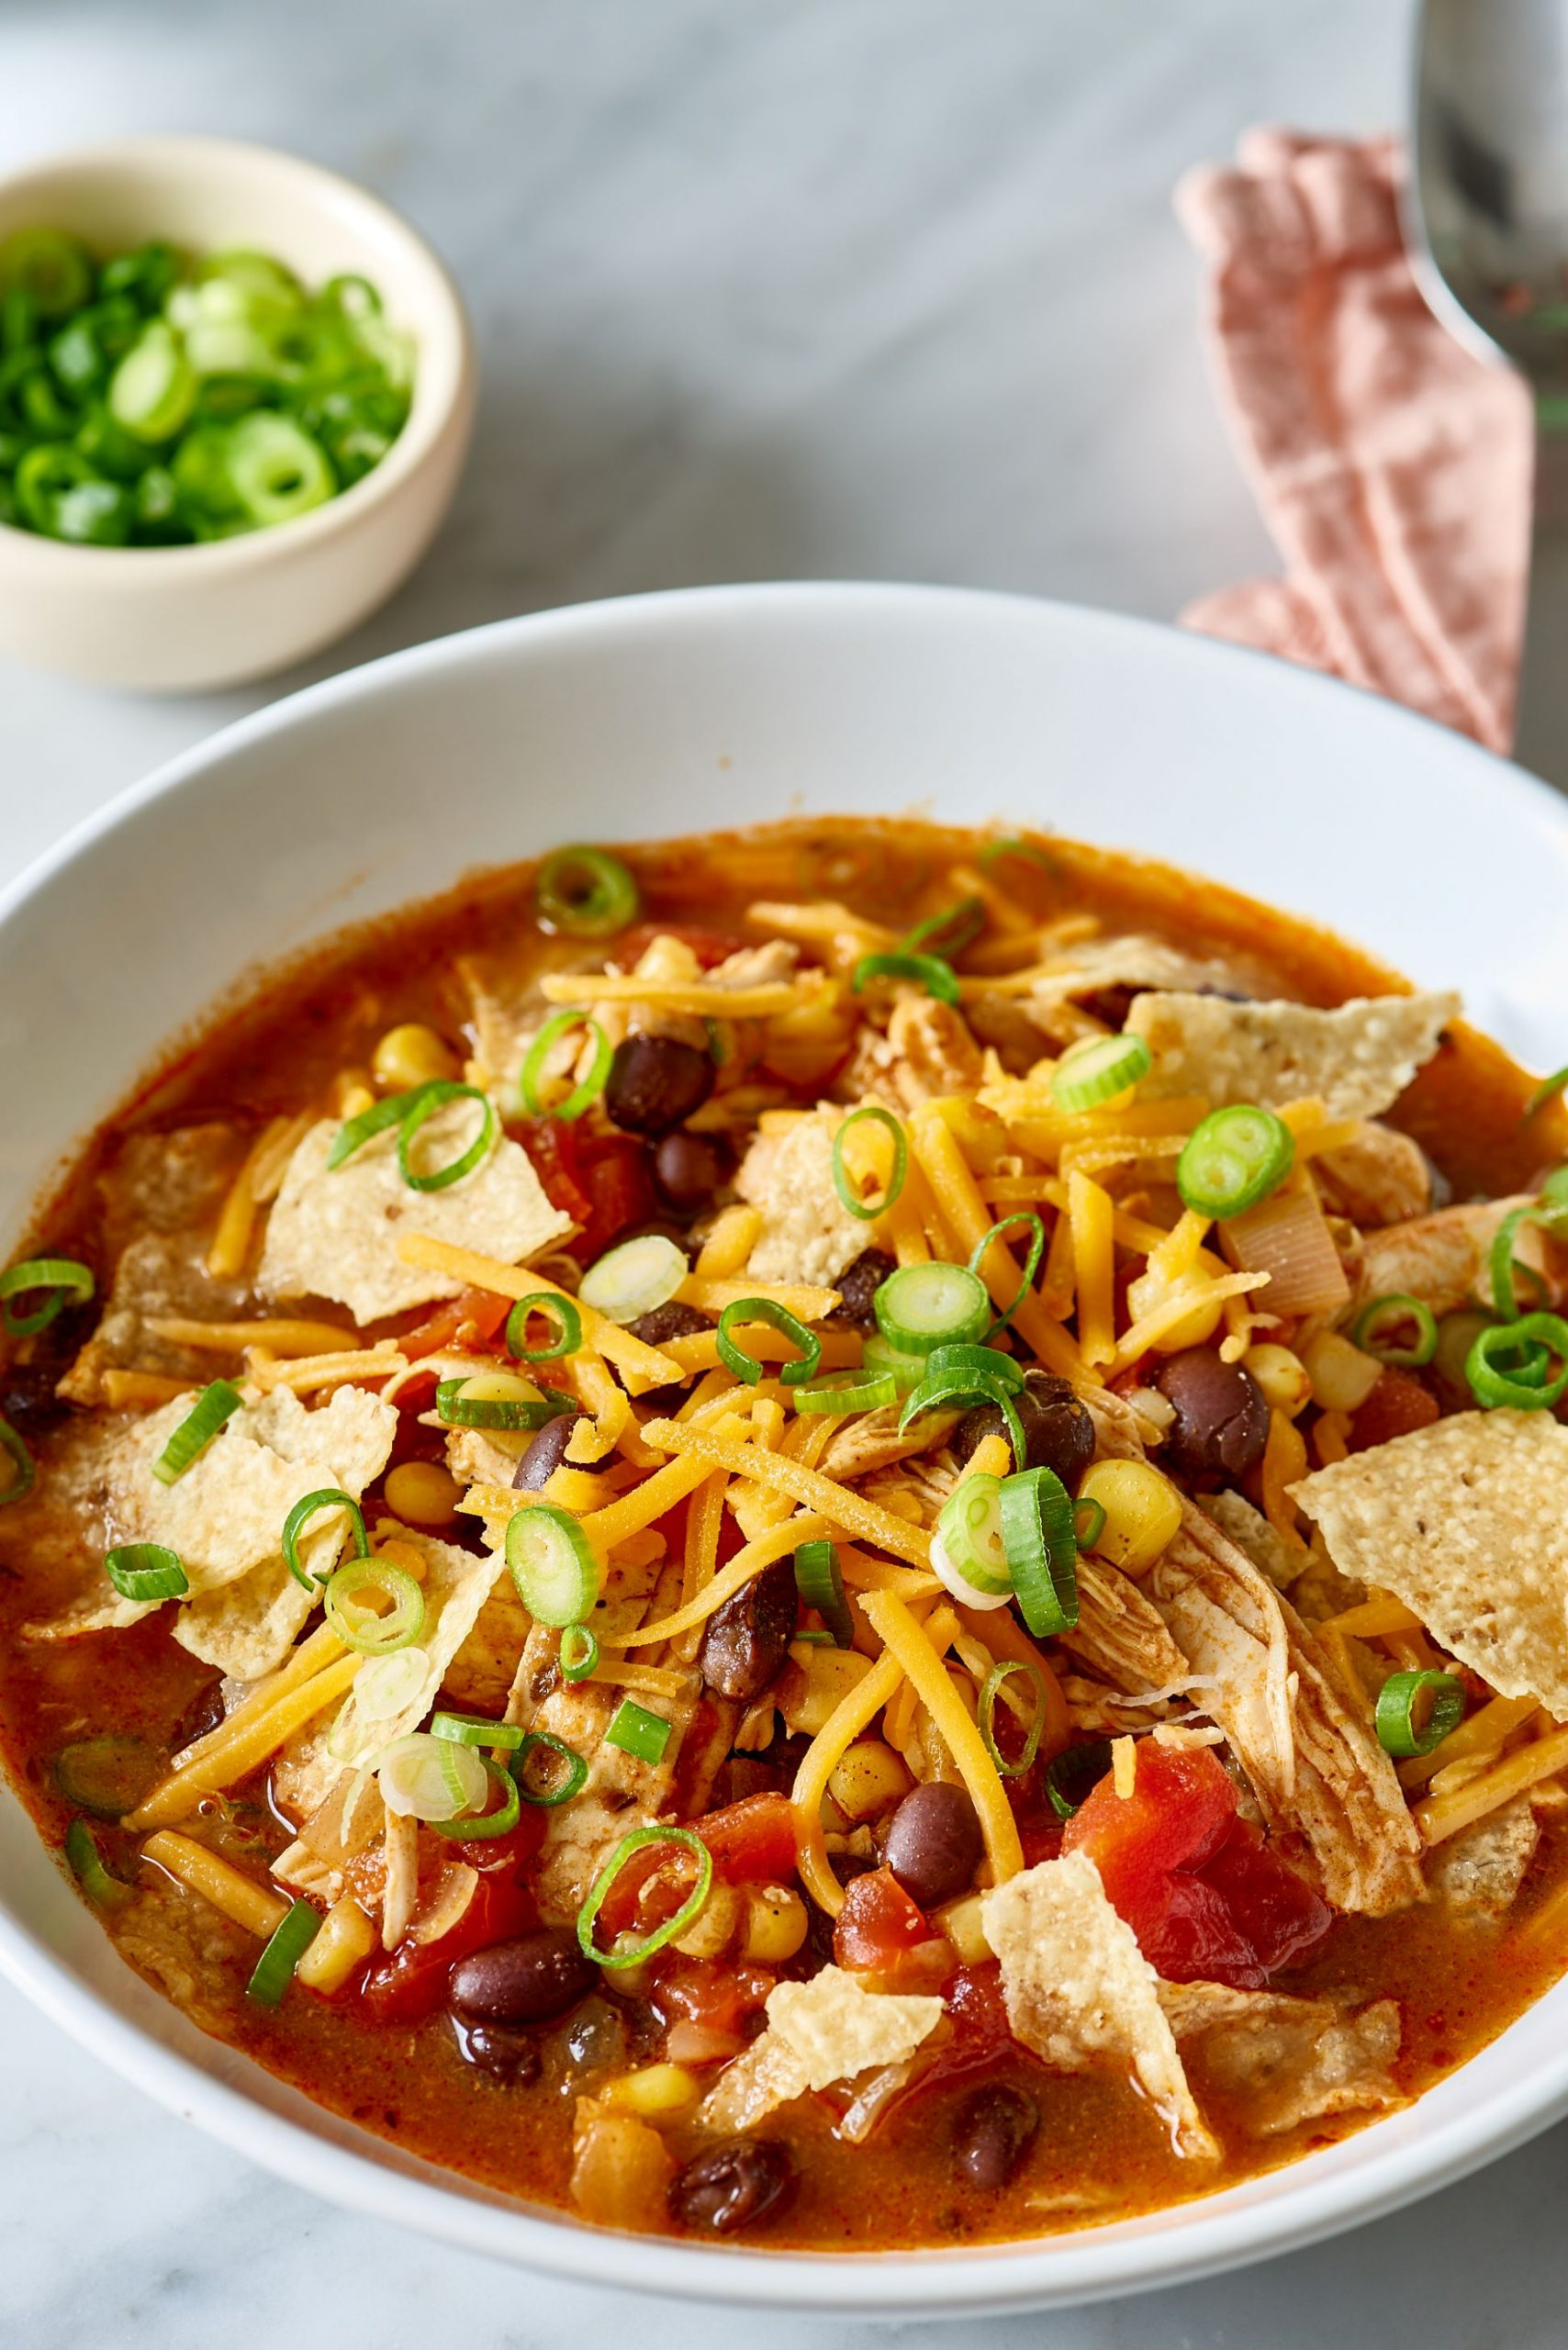 Easy One-Pot Chicken Taco Soup